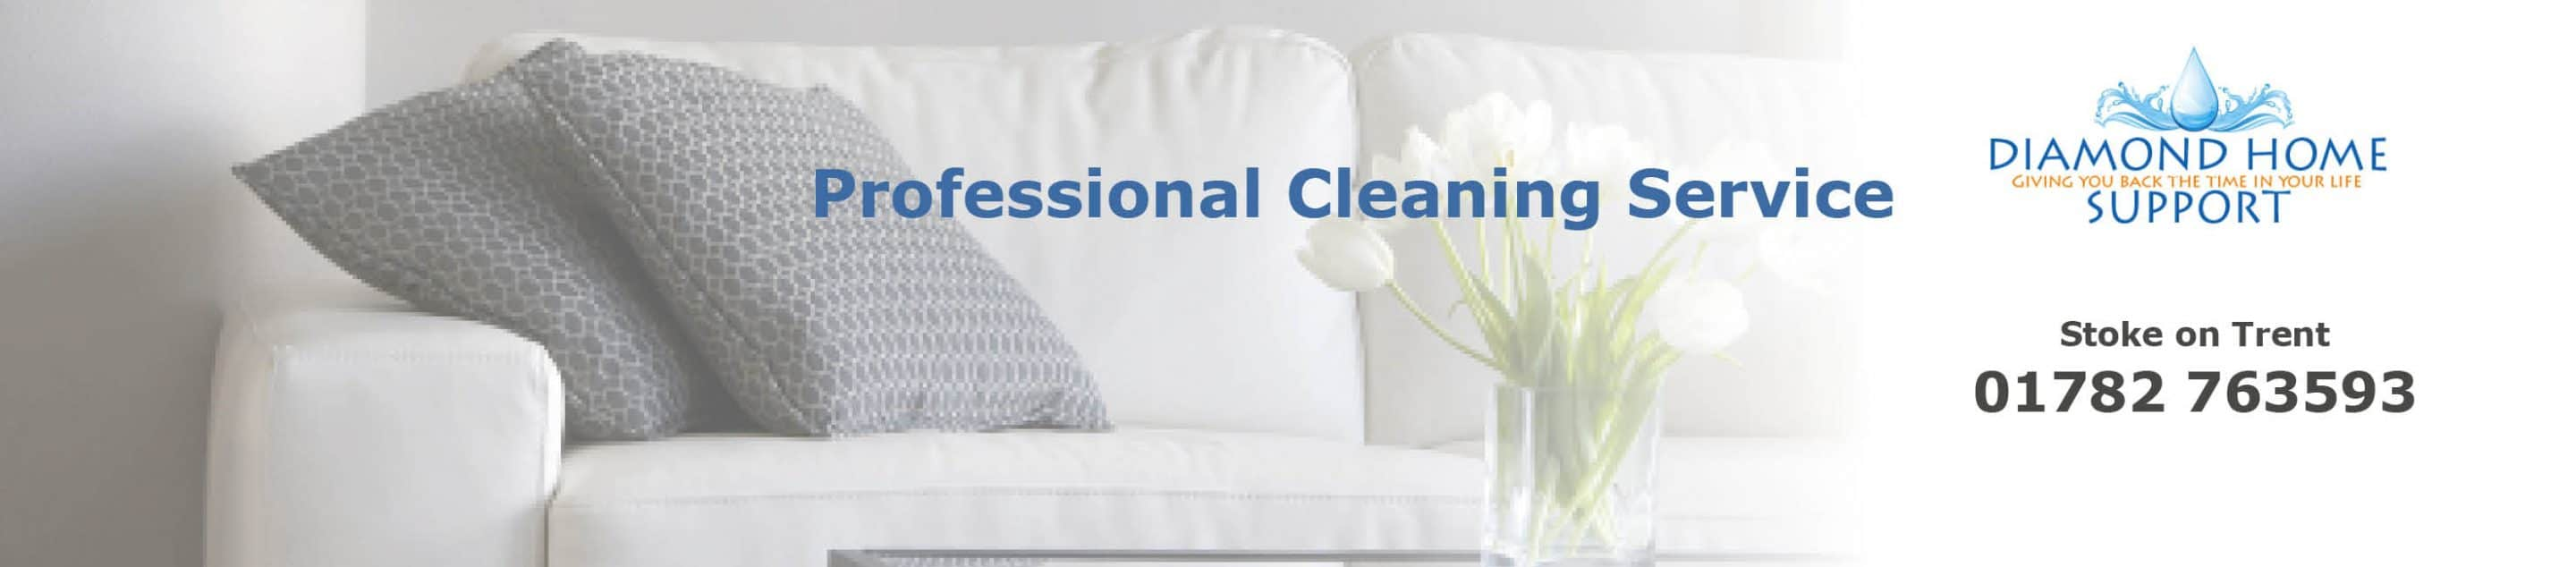 Cleaners in Stoke on Trent